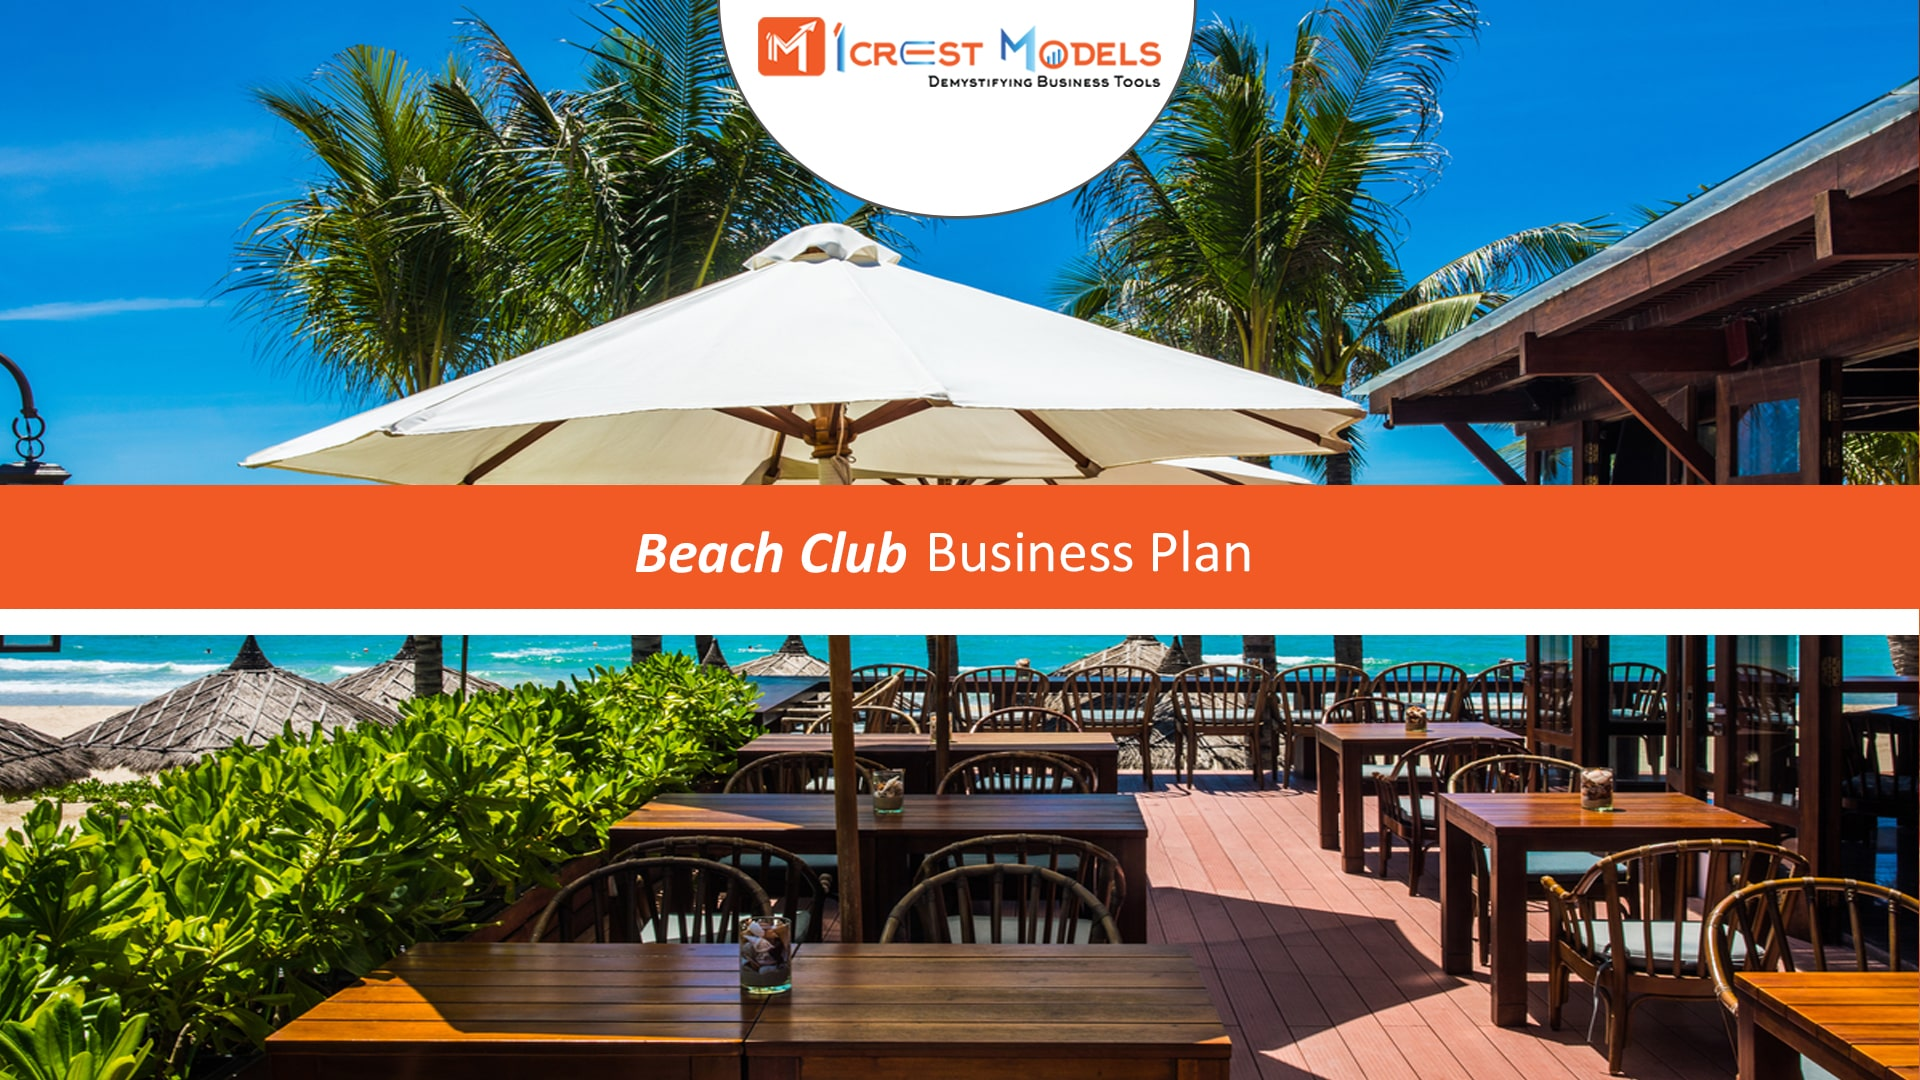 Business Plan of Beach Club